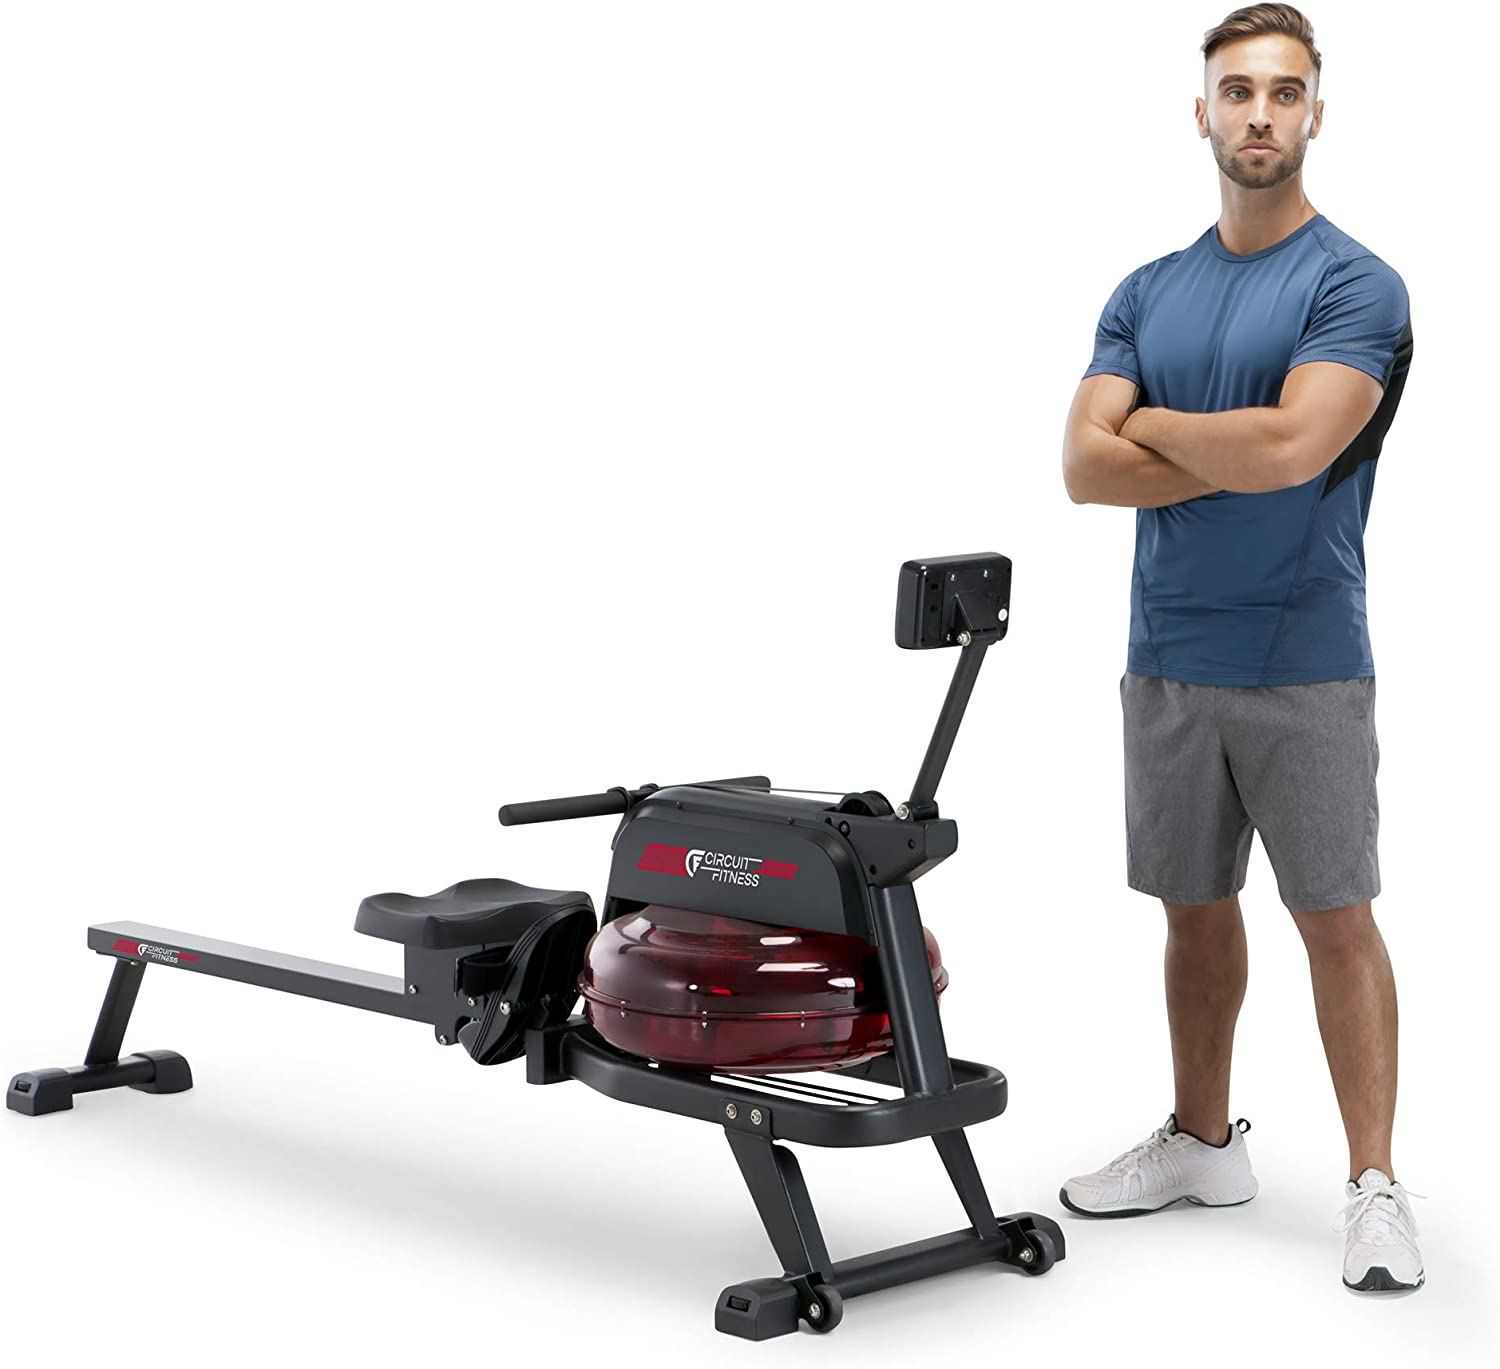 CIRCUIT FITNESS Circuit Fitness Water Rowing Machine